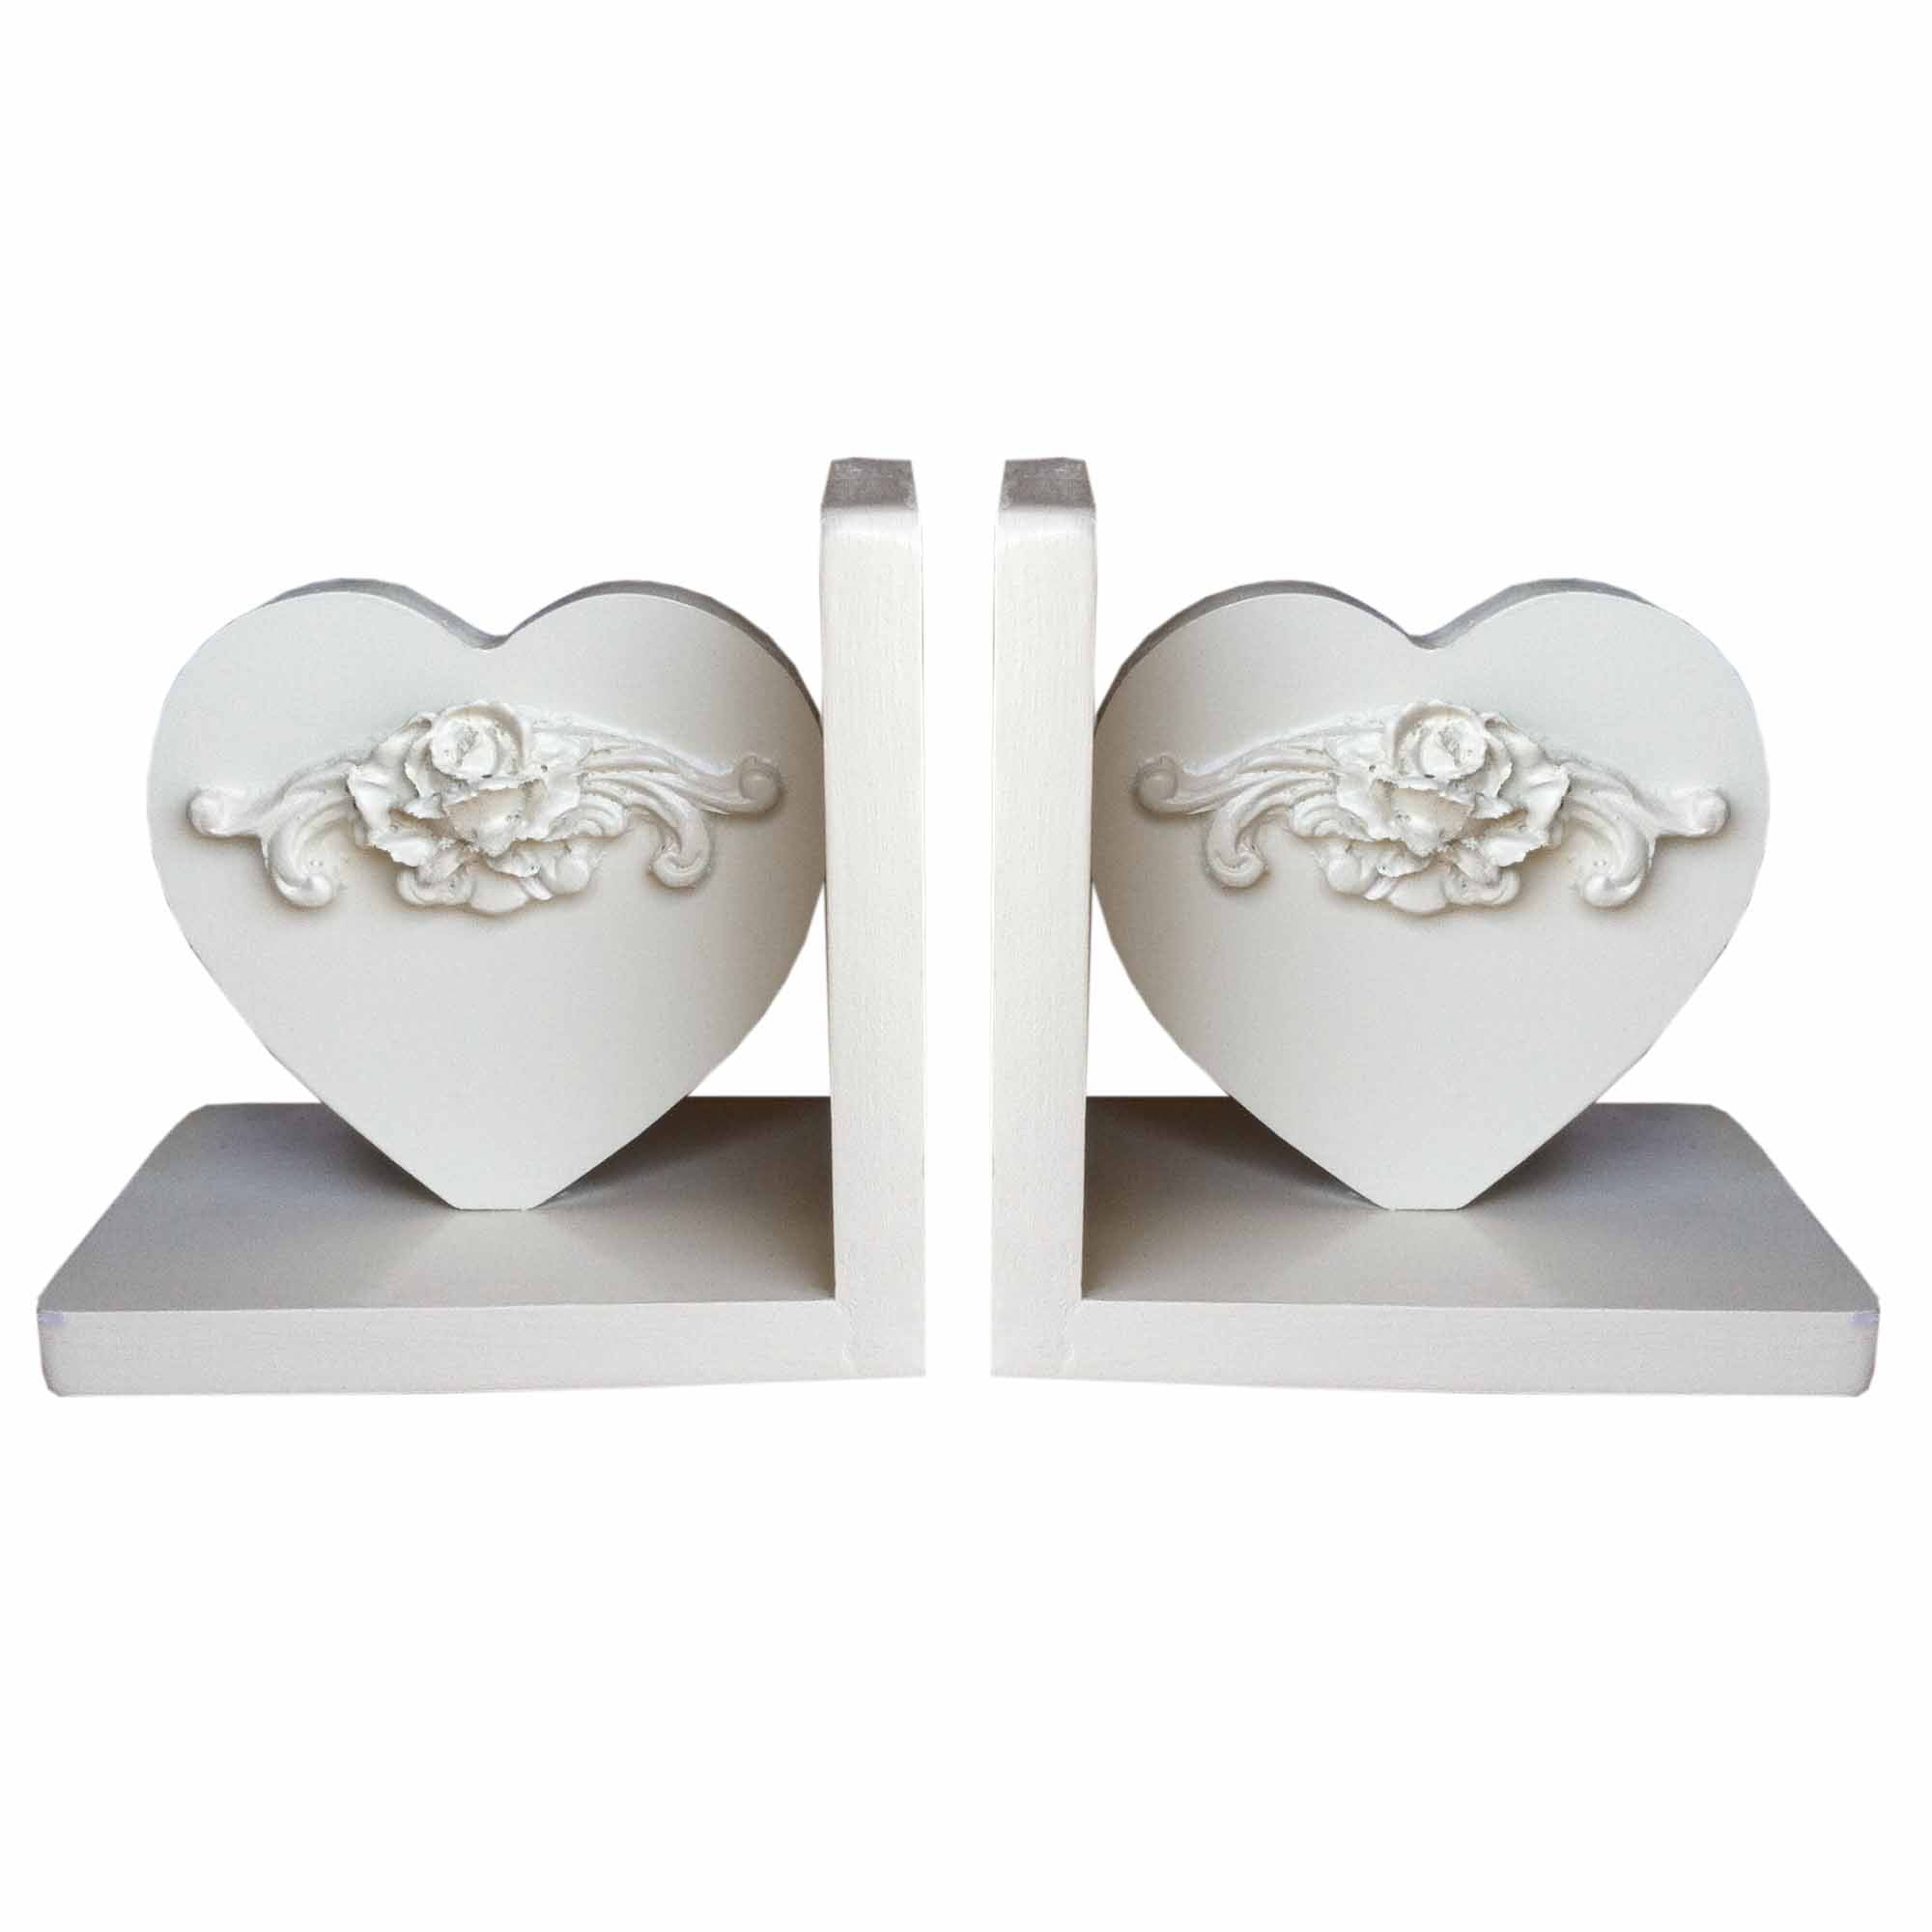 Bella heart-shaped bookends